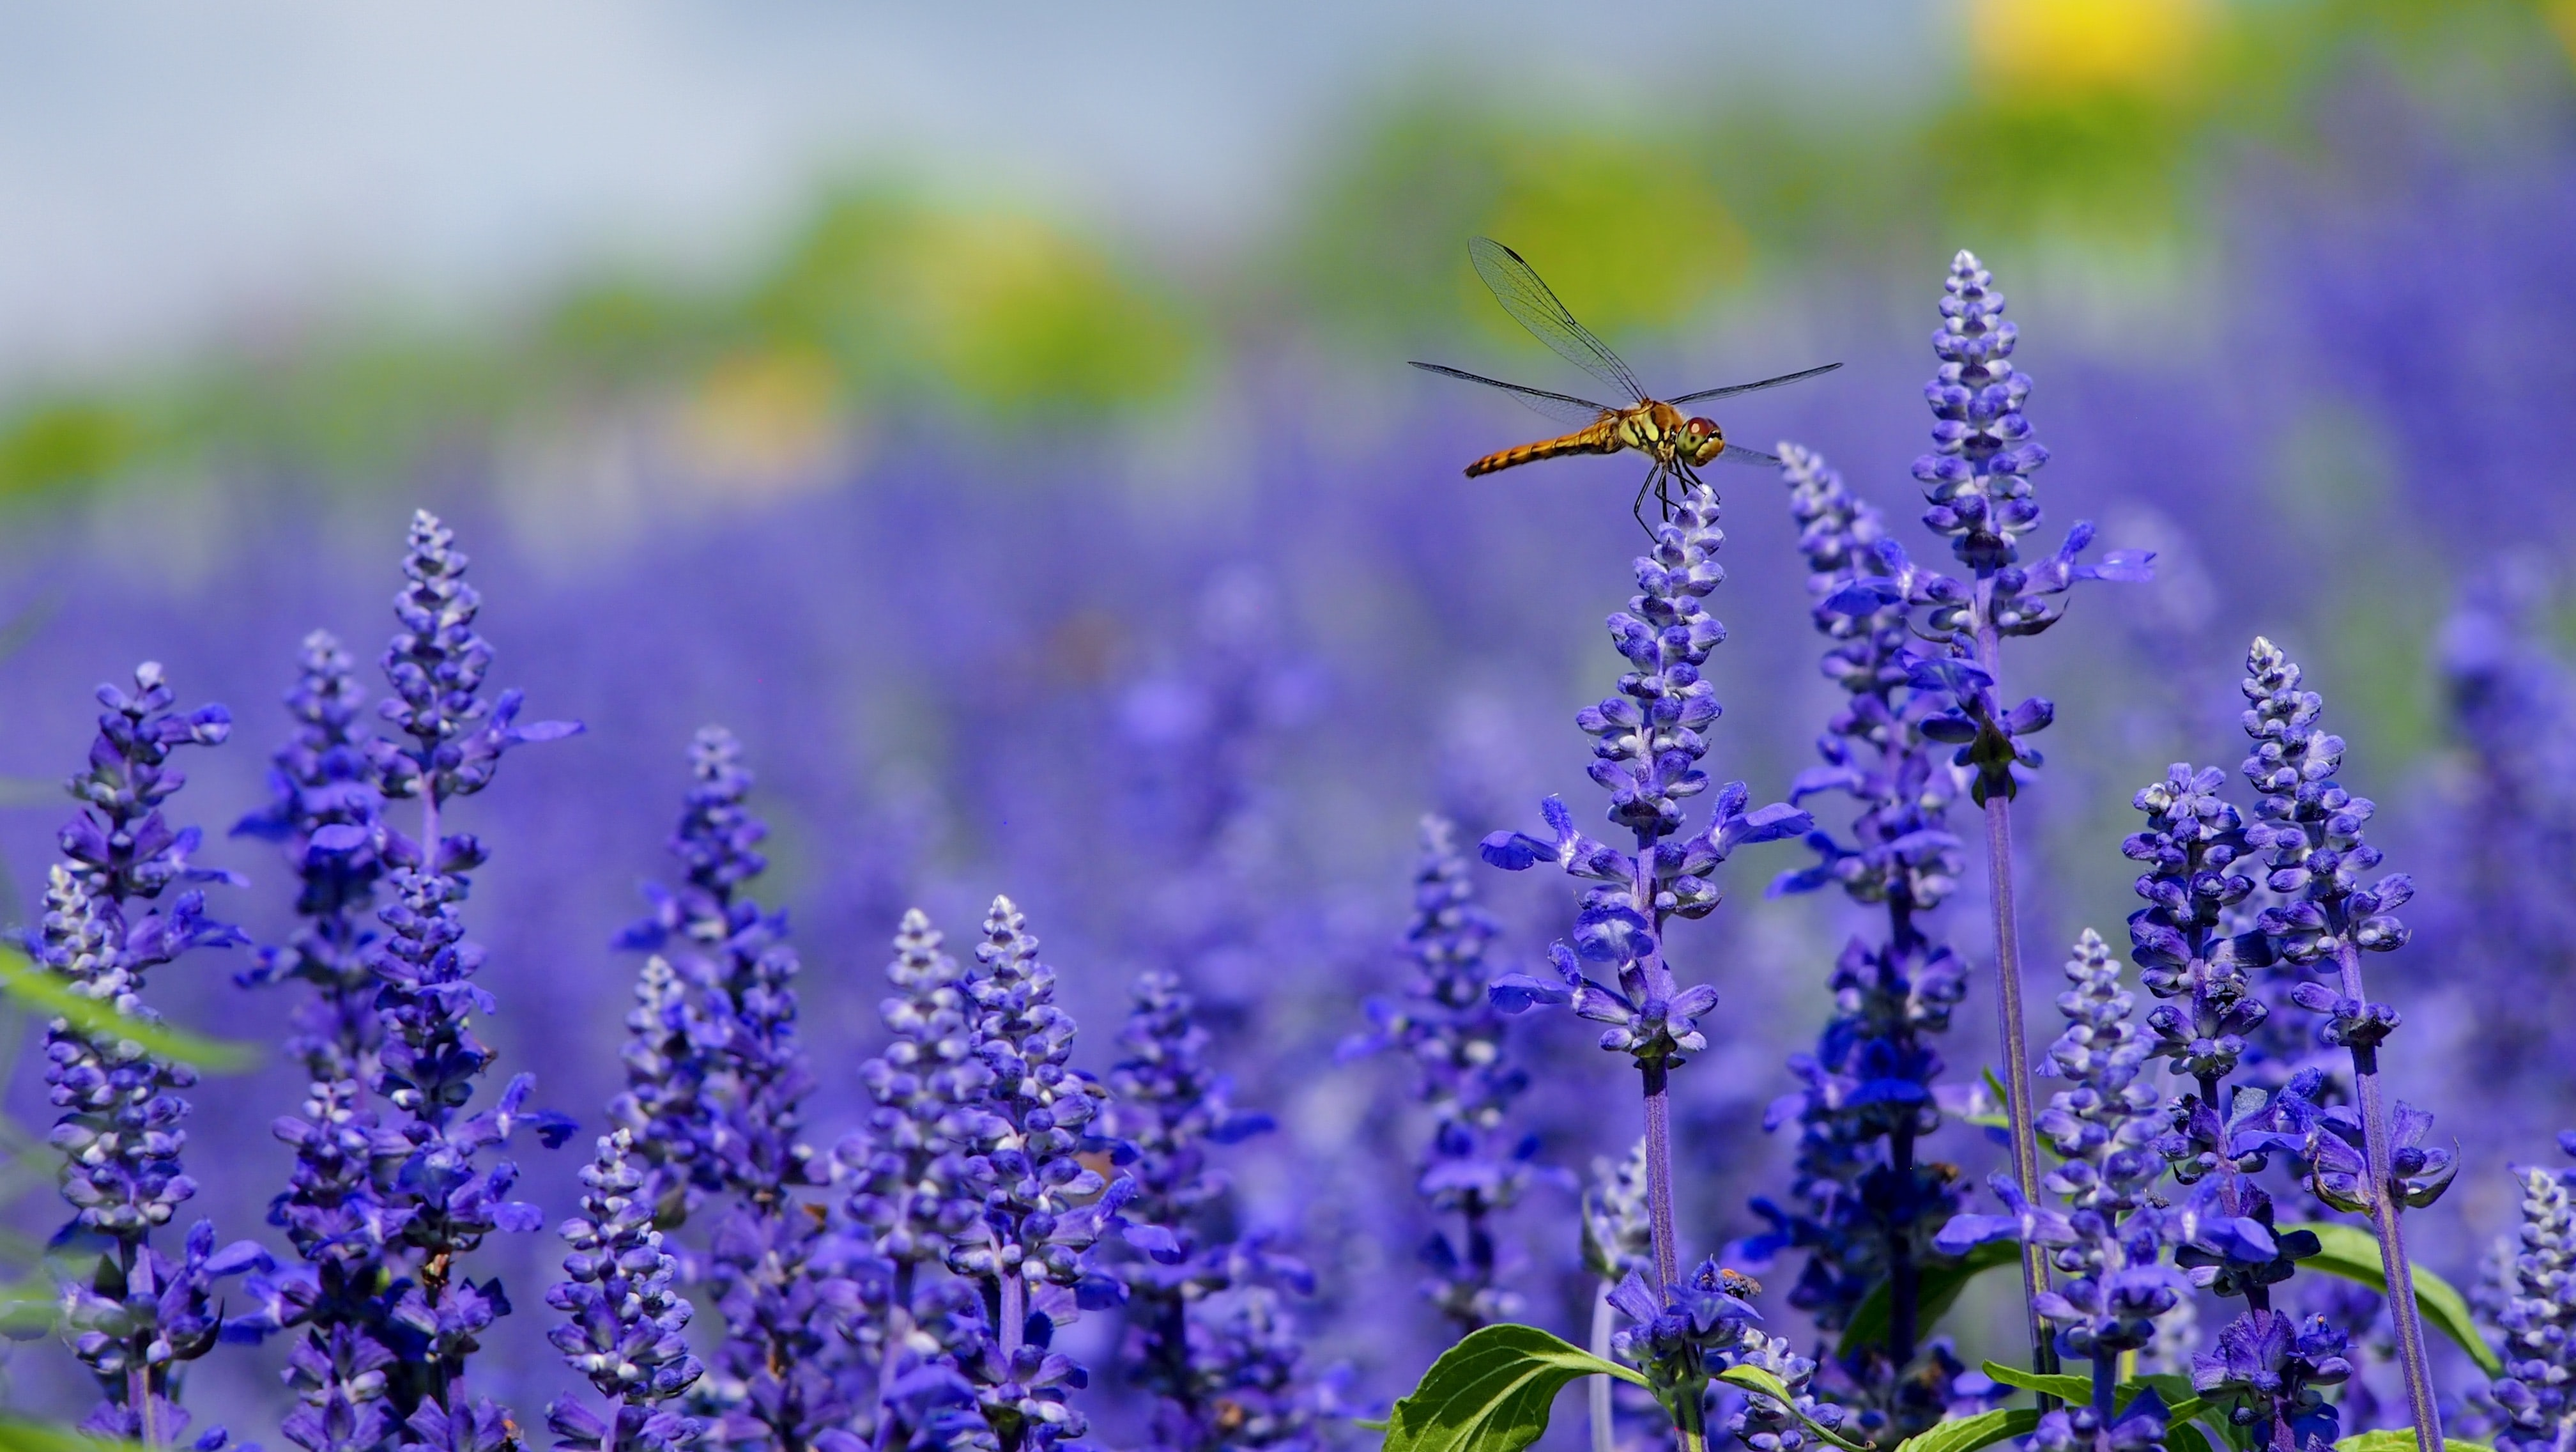 A golden dragonfly on top of lavender flowers